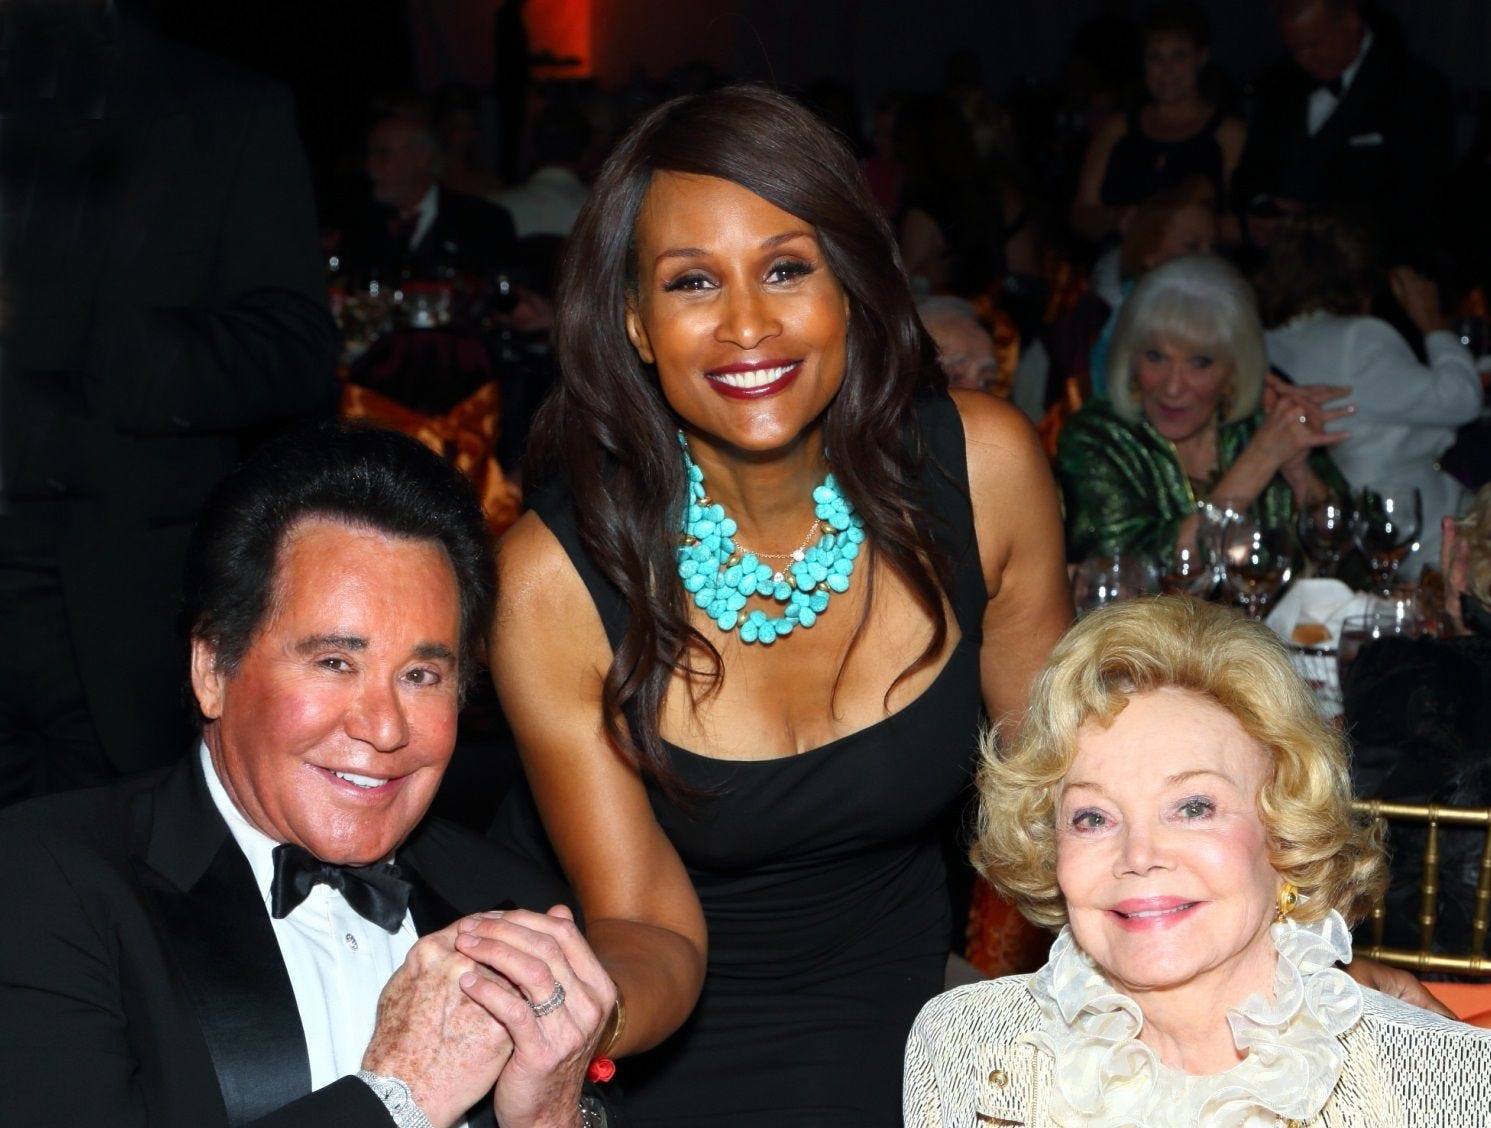 Supermodel Beverly Johnson (center) is seen with Wayne Newton and Barbara Sinatra at a charity event.